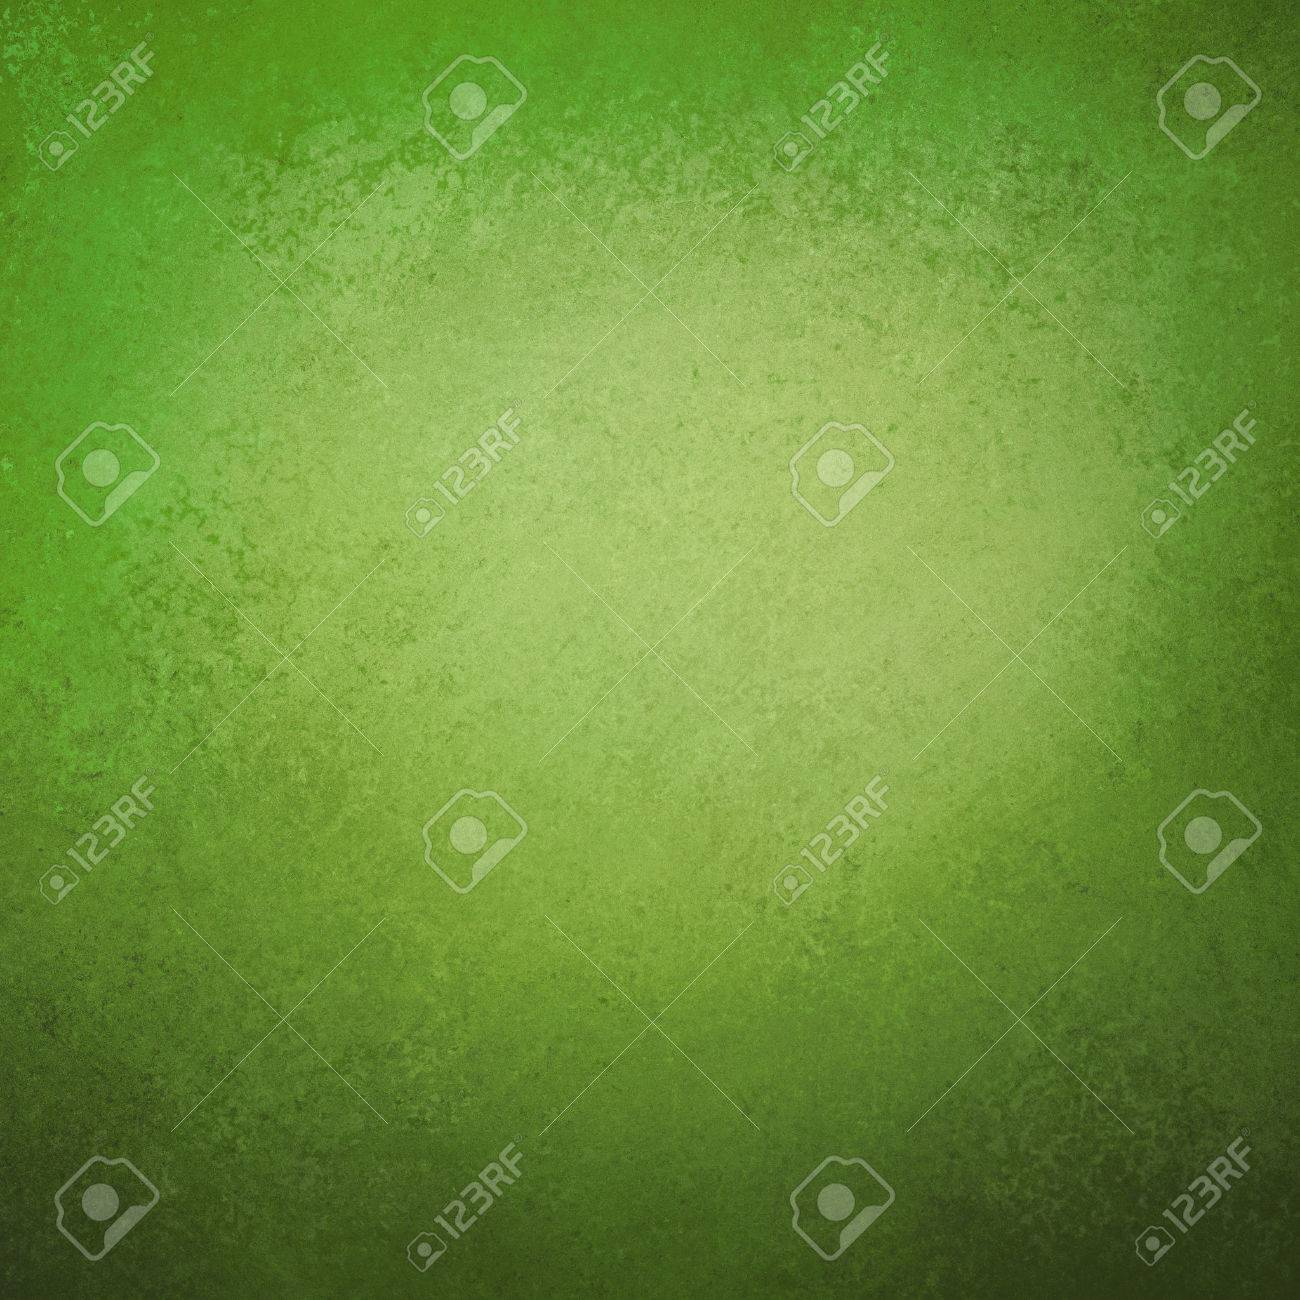 green background, vintage color and sponged distressed texture in soft blended brush strokes with light center and darker border - 46183531